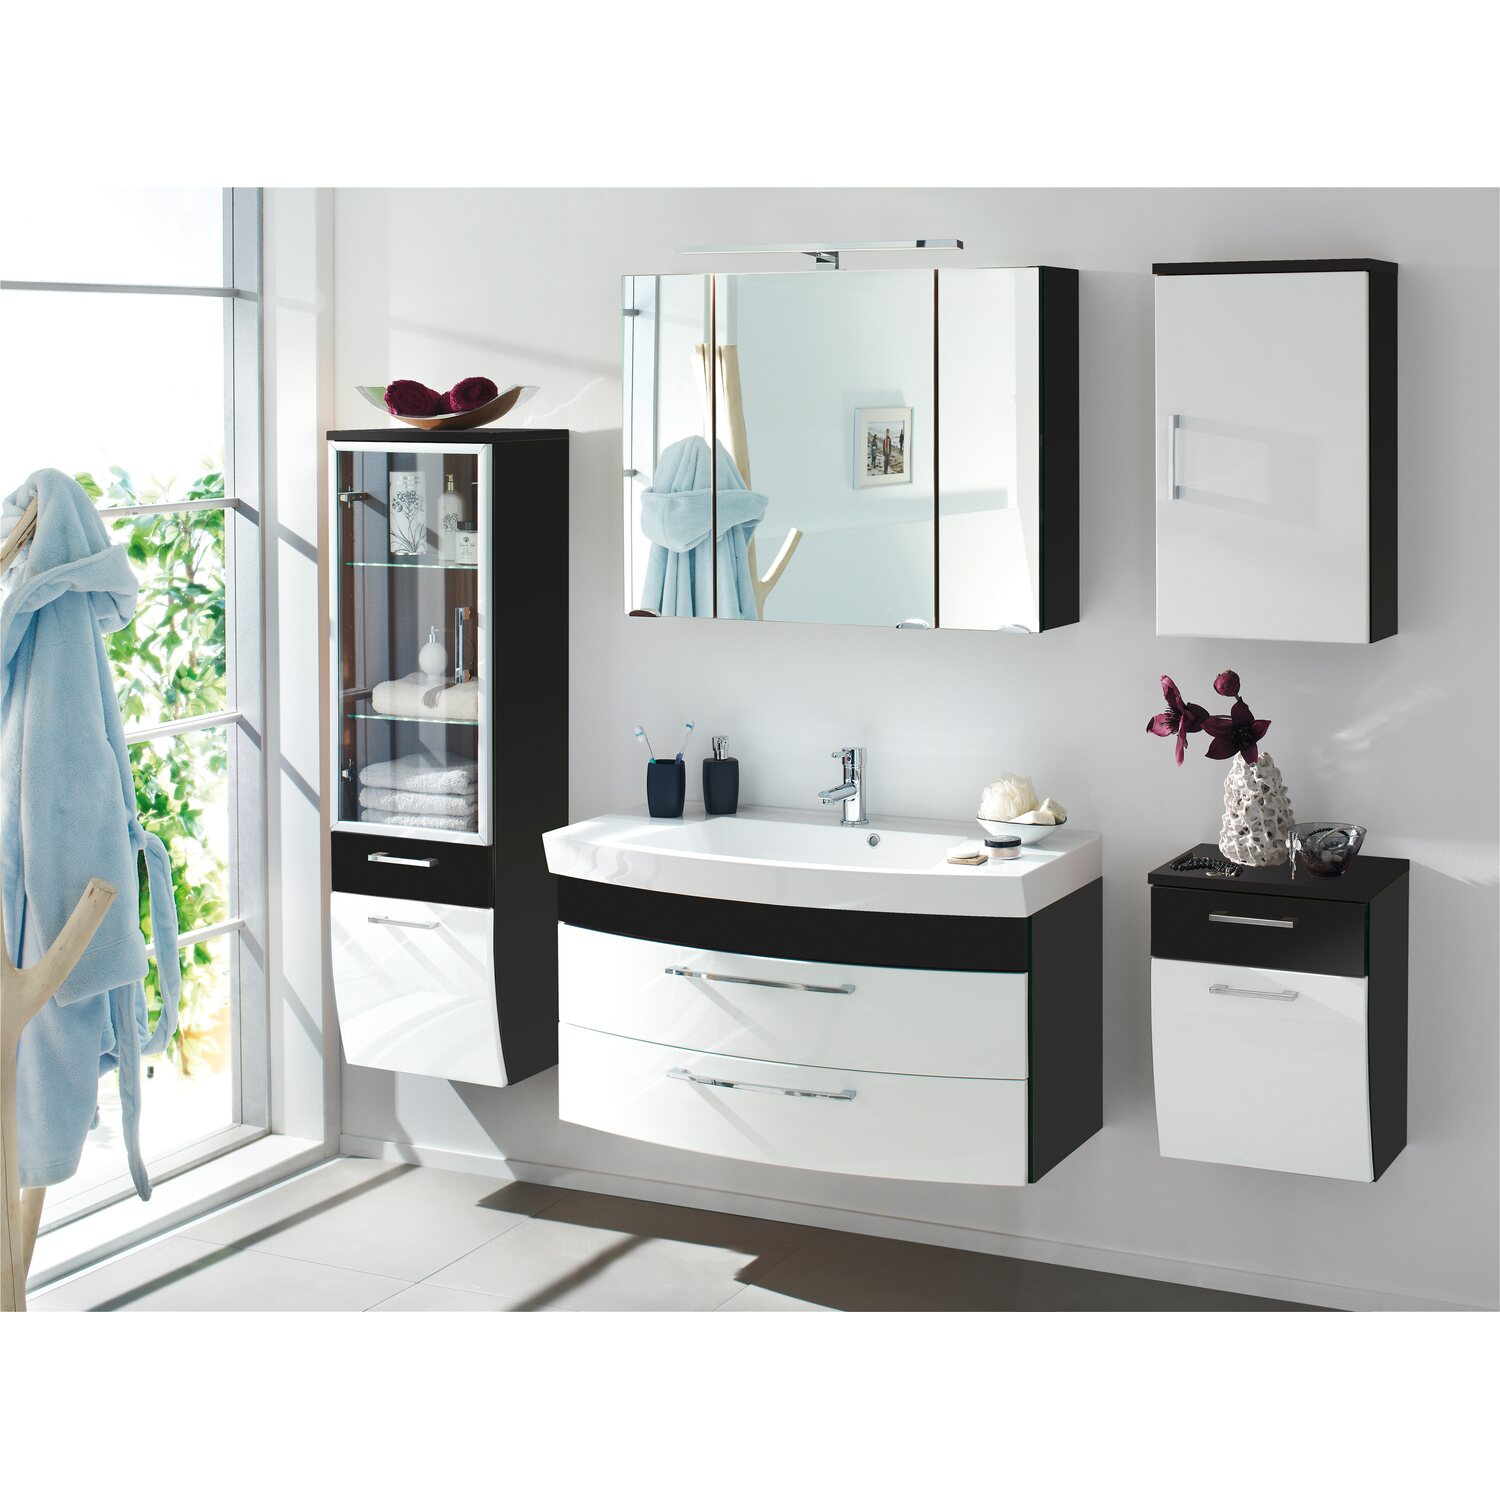 posseik badm bel set rima anthrazit wei 3 teilig eek a. Black Bedroom Furniture Sets. Home Design Ideas